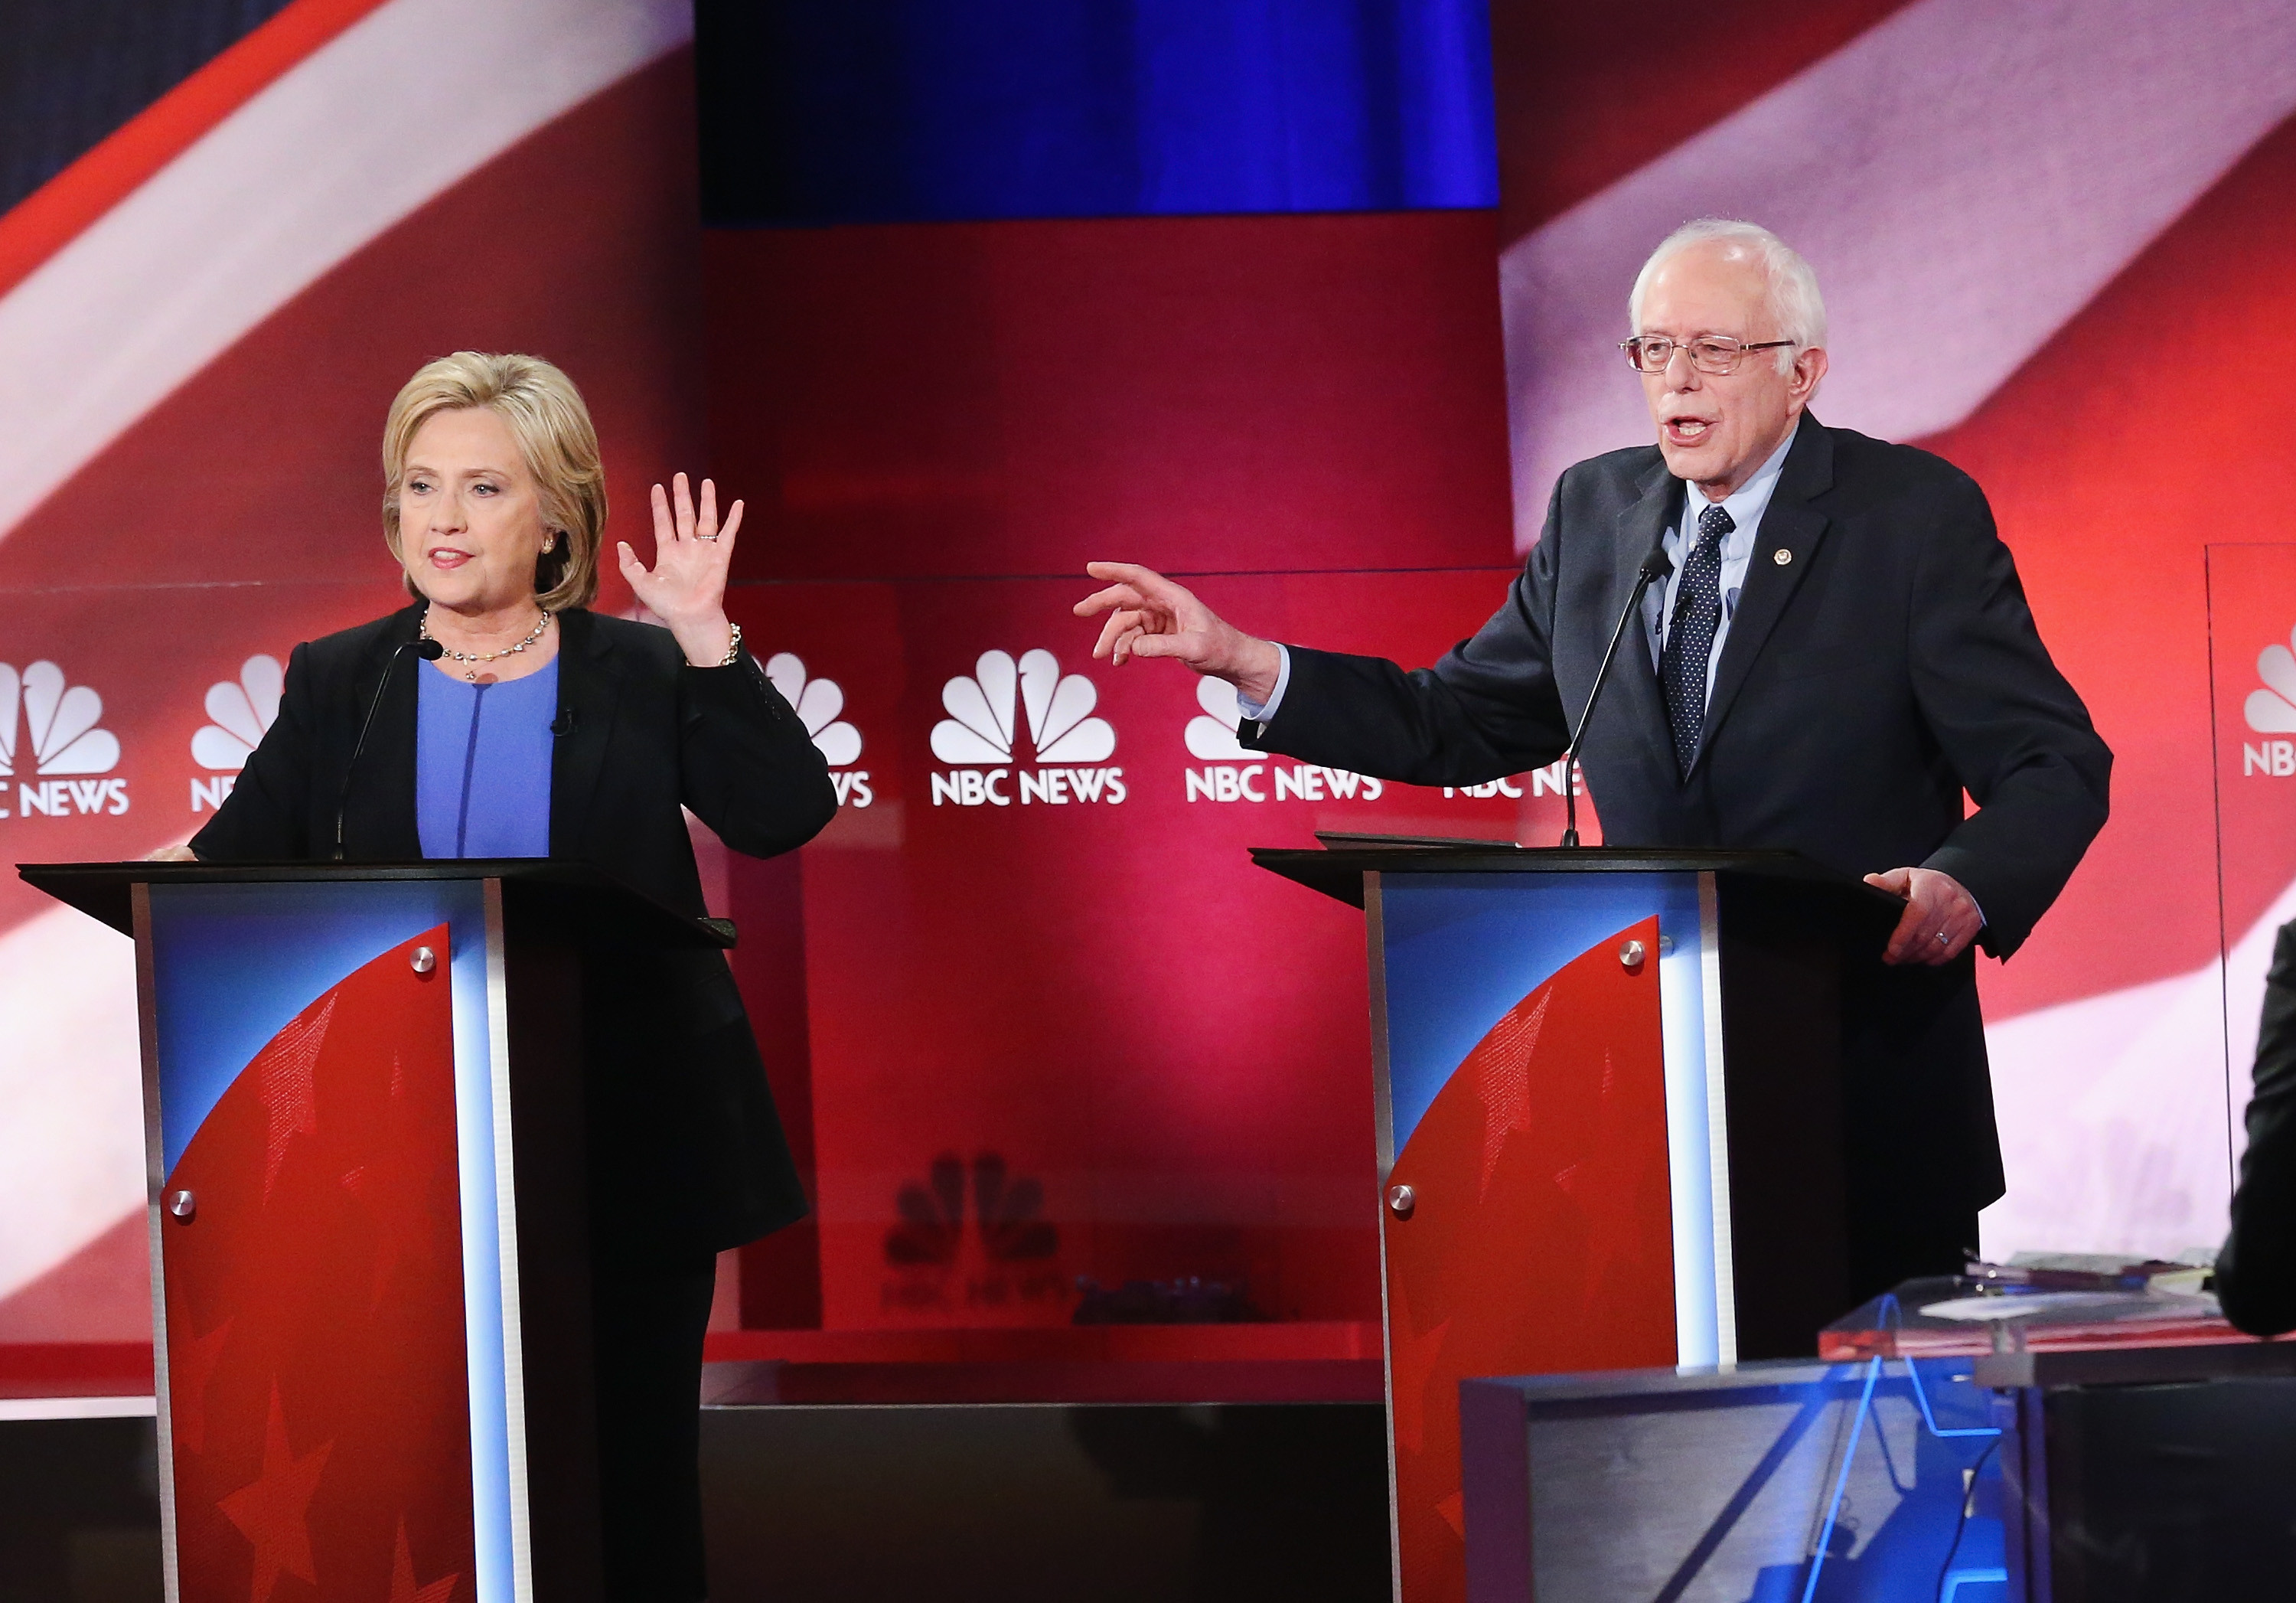 berniementum nbc fourth democratic debate recap the bernie debate